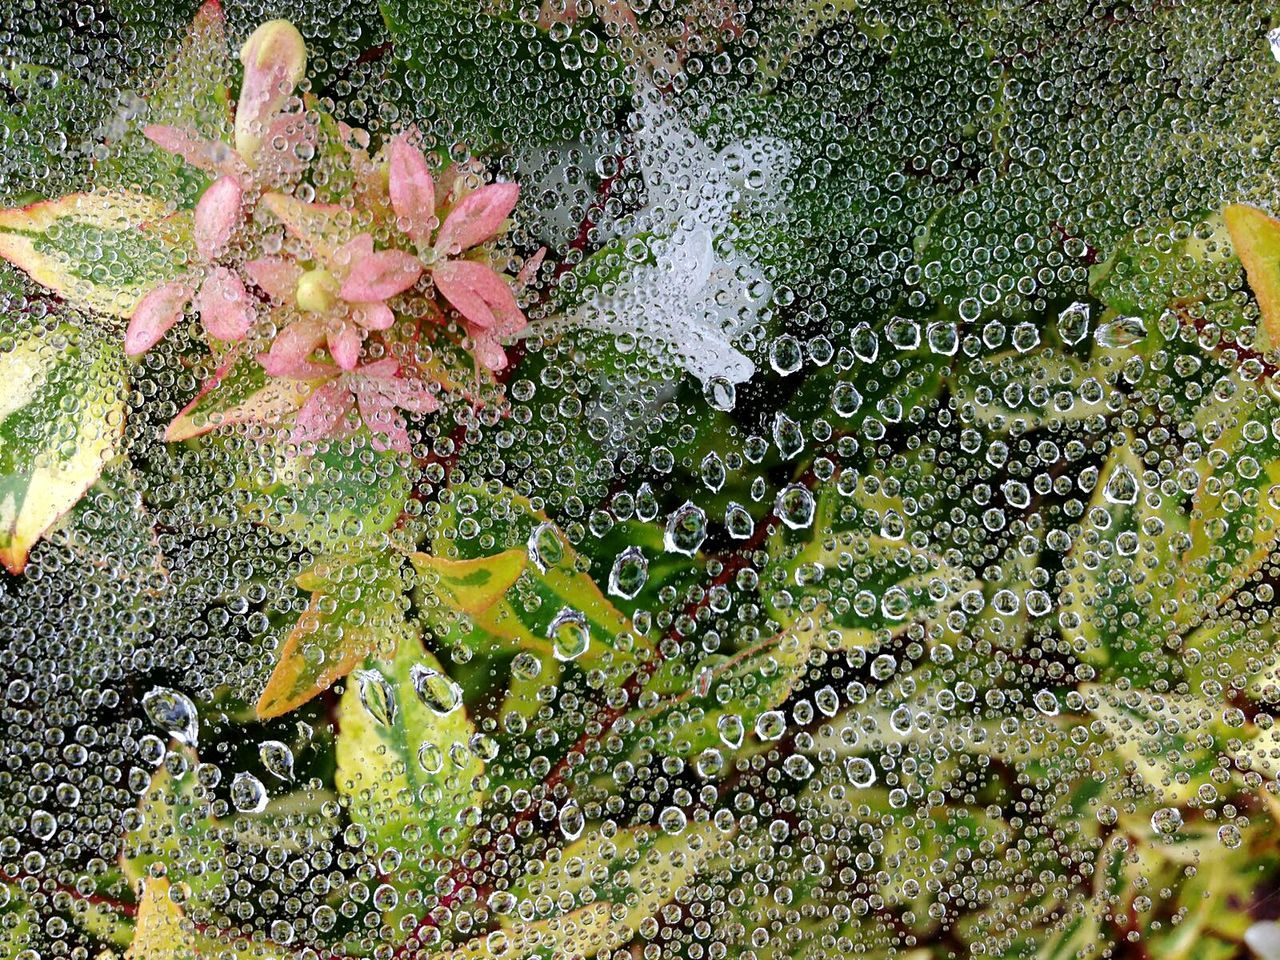 Dew Drops On Leaf Dew Drops On Spider Web Season  WaterClose-up Nature Beauty In Nature Outdoors Green Color Flower Season  Freshness